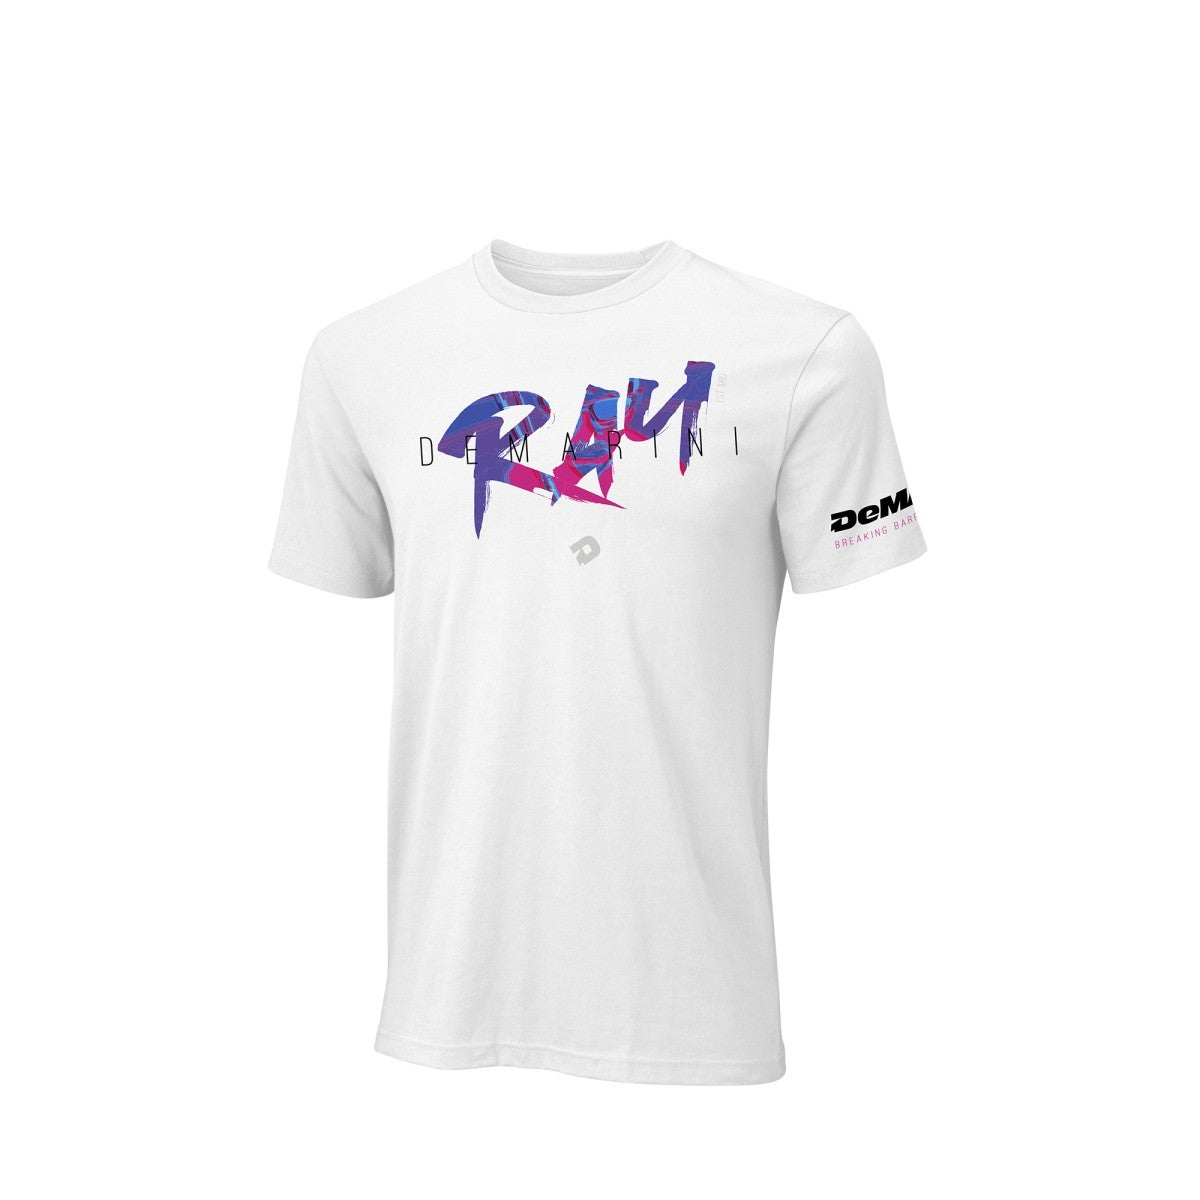 Men's Ray DeMarini T-Shirt